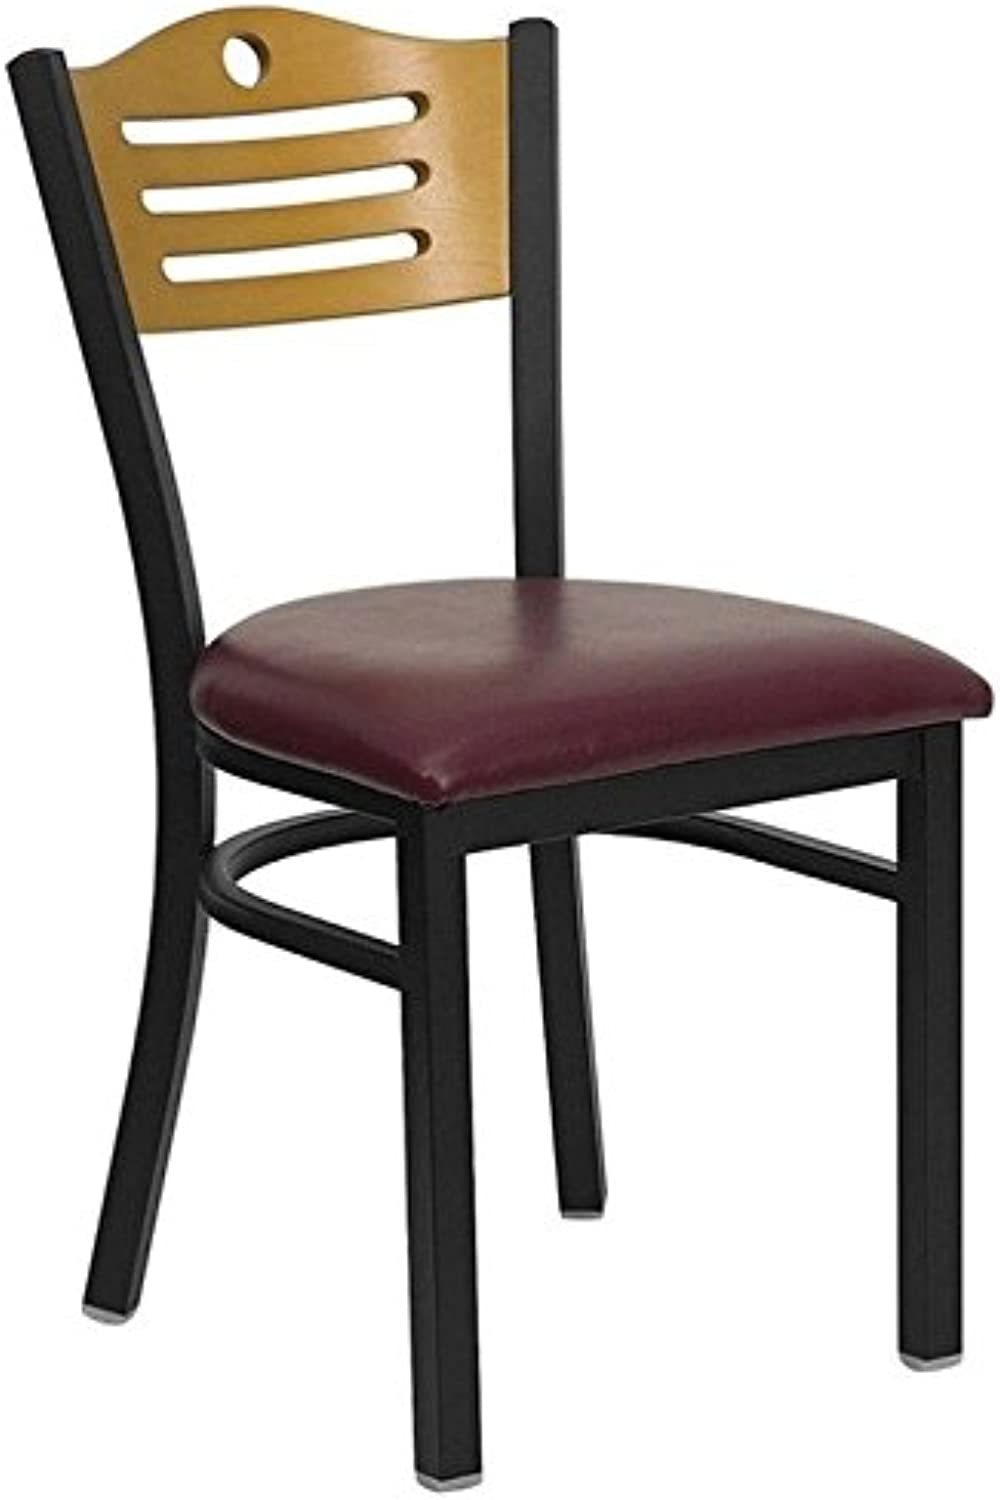 Bowery Hill Black Slat Back Dining Chair in Burgundy